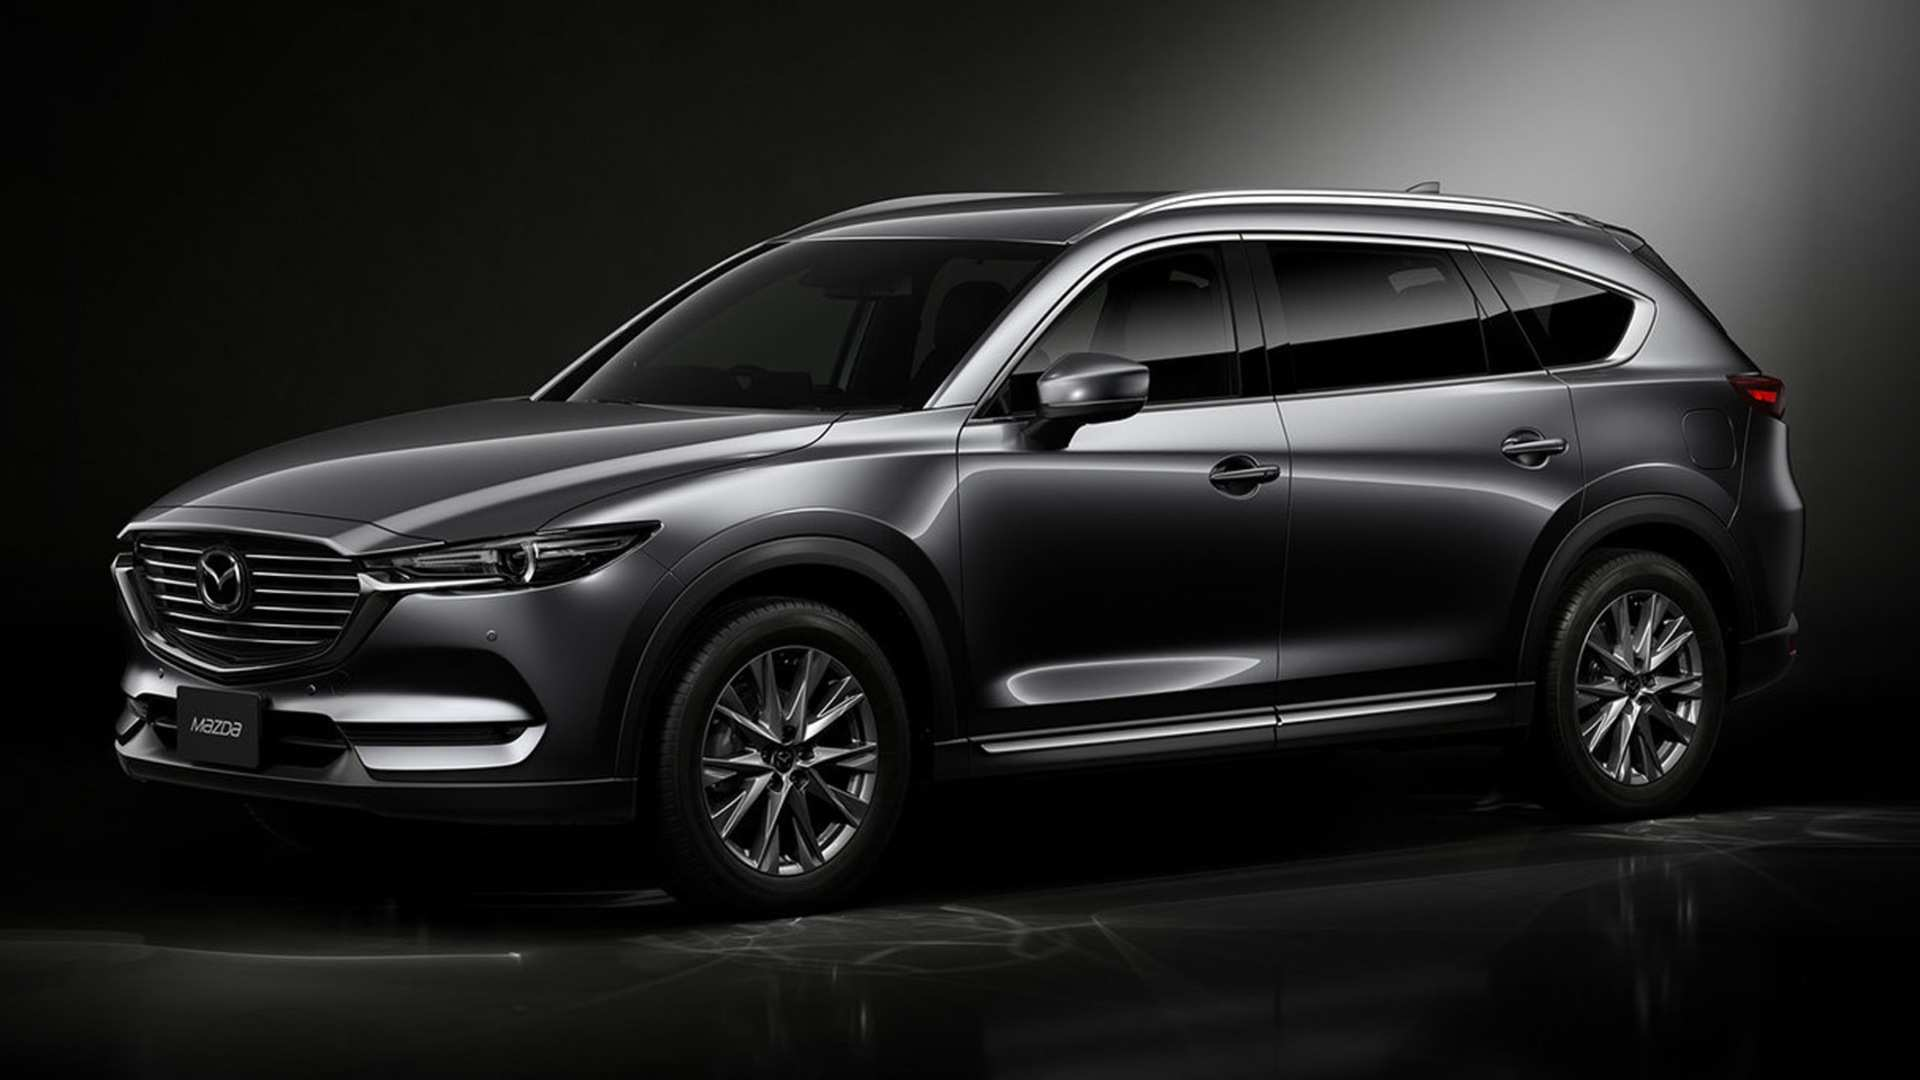 97 The Best 2020 Mazda CX 9 Redesign And Review